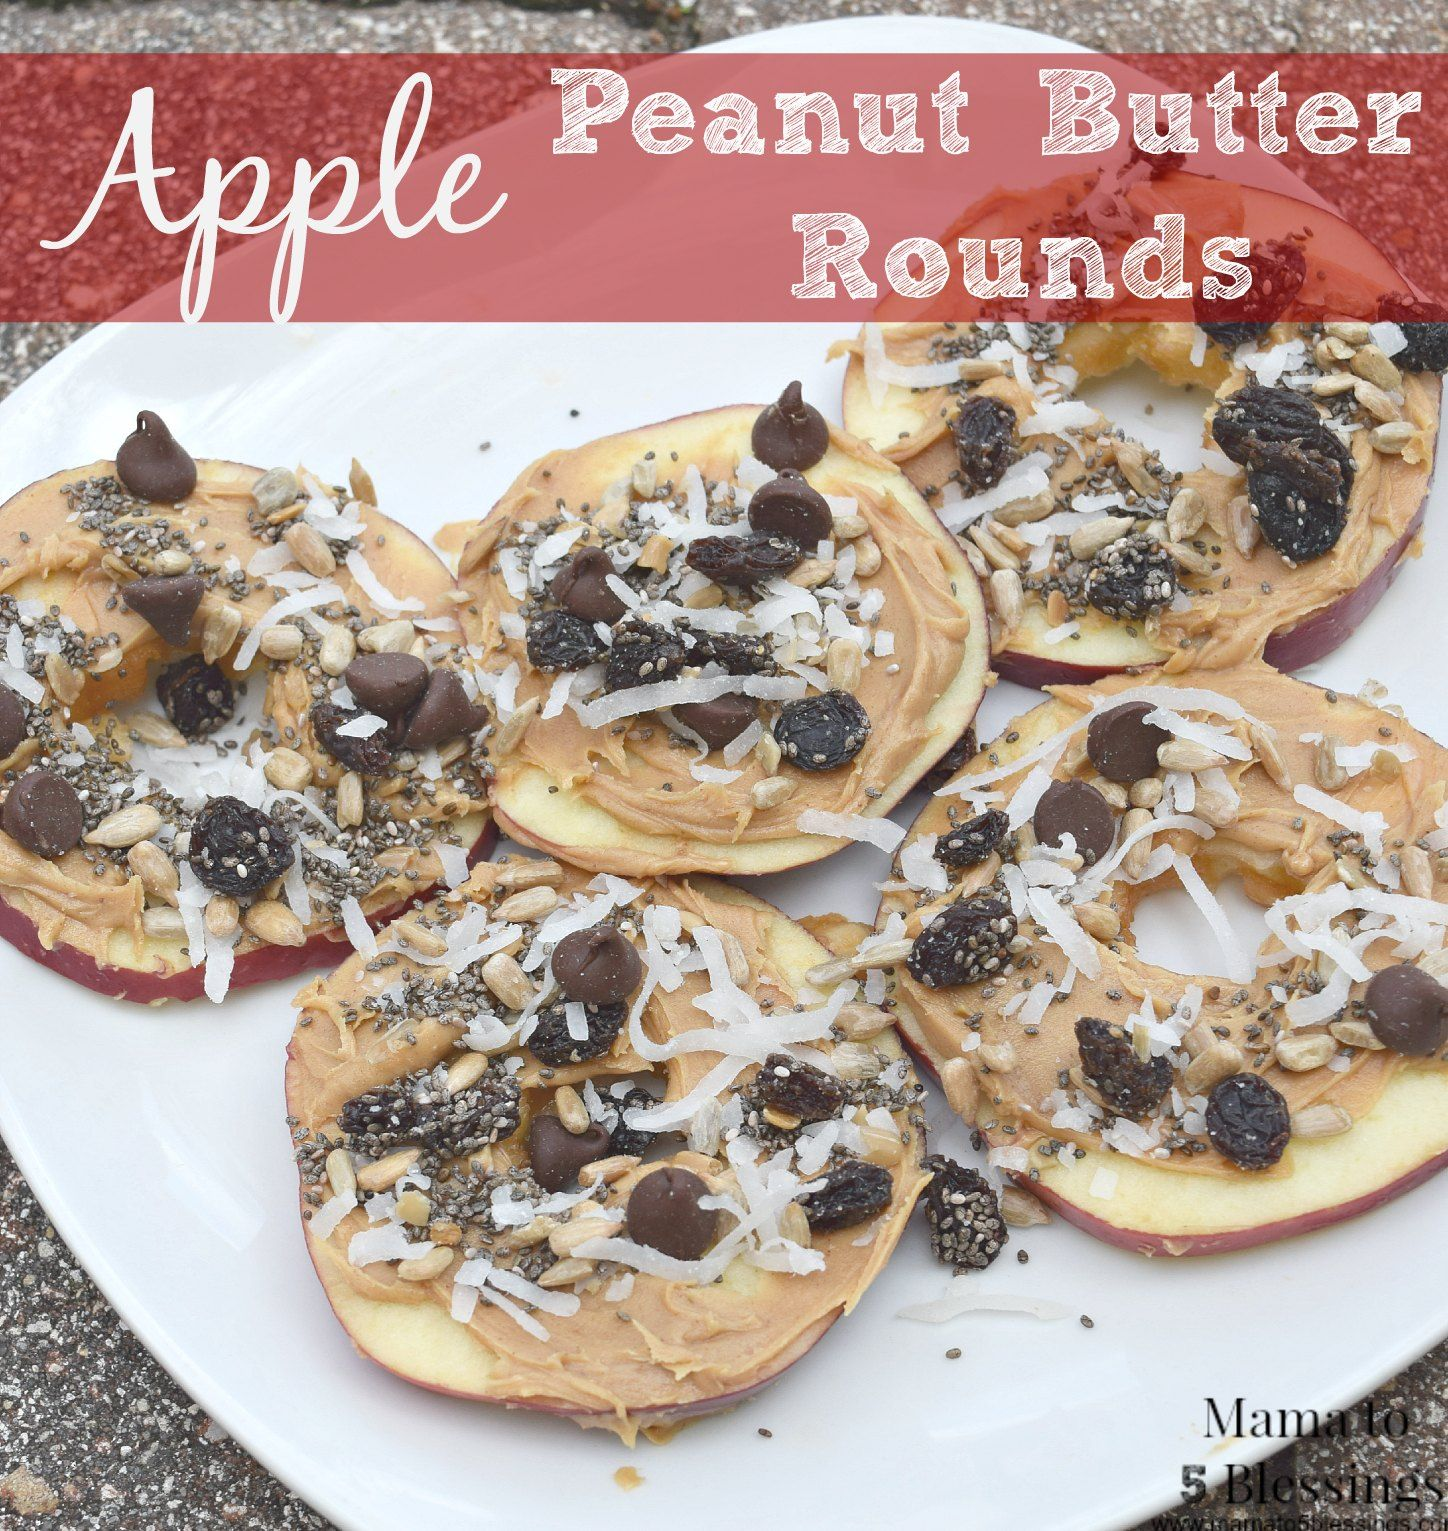 Apple Peanut Butter Rounds, perfect healthy recipe for kids. Can be modified several ways to children's likes or if they have allergies http://mamato5blessings.com/2015/10/apple-peanut-butter-rounds/